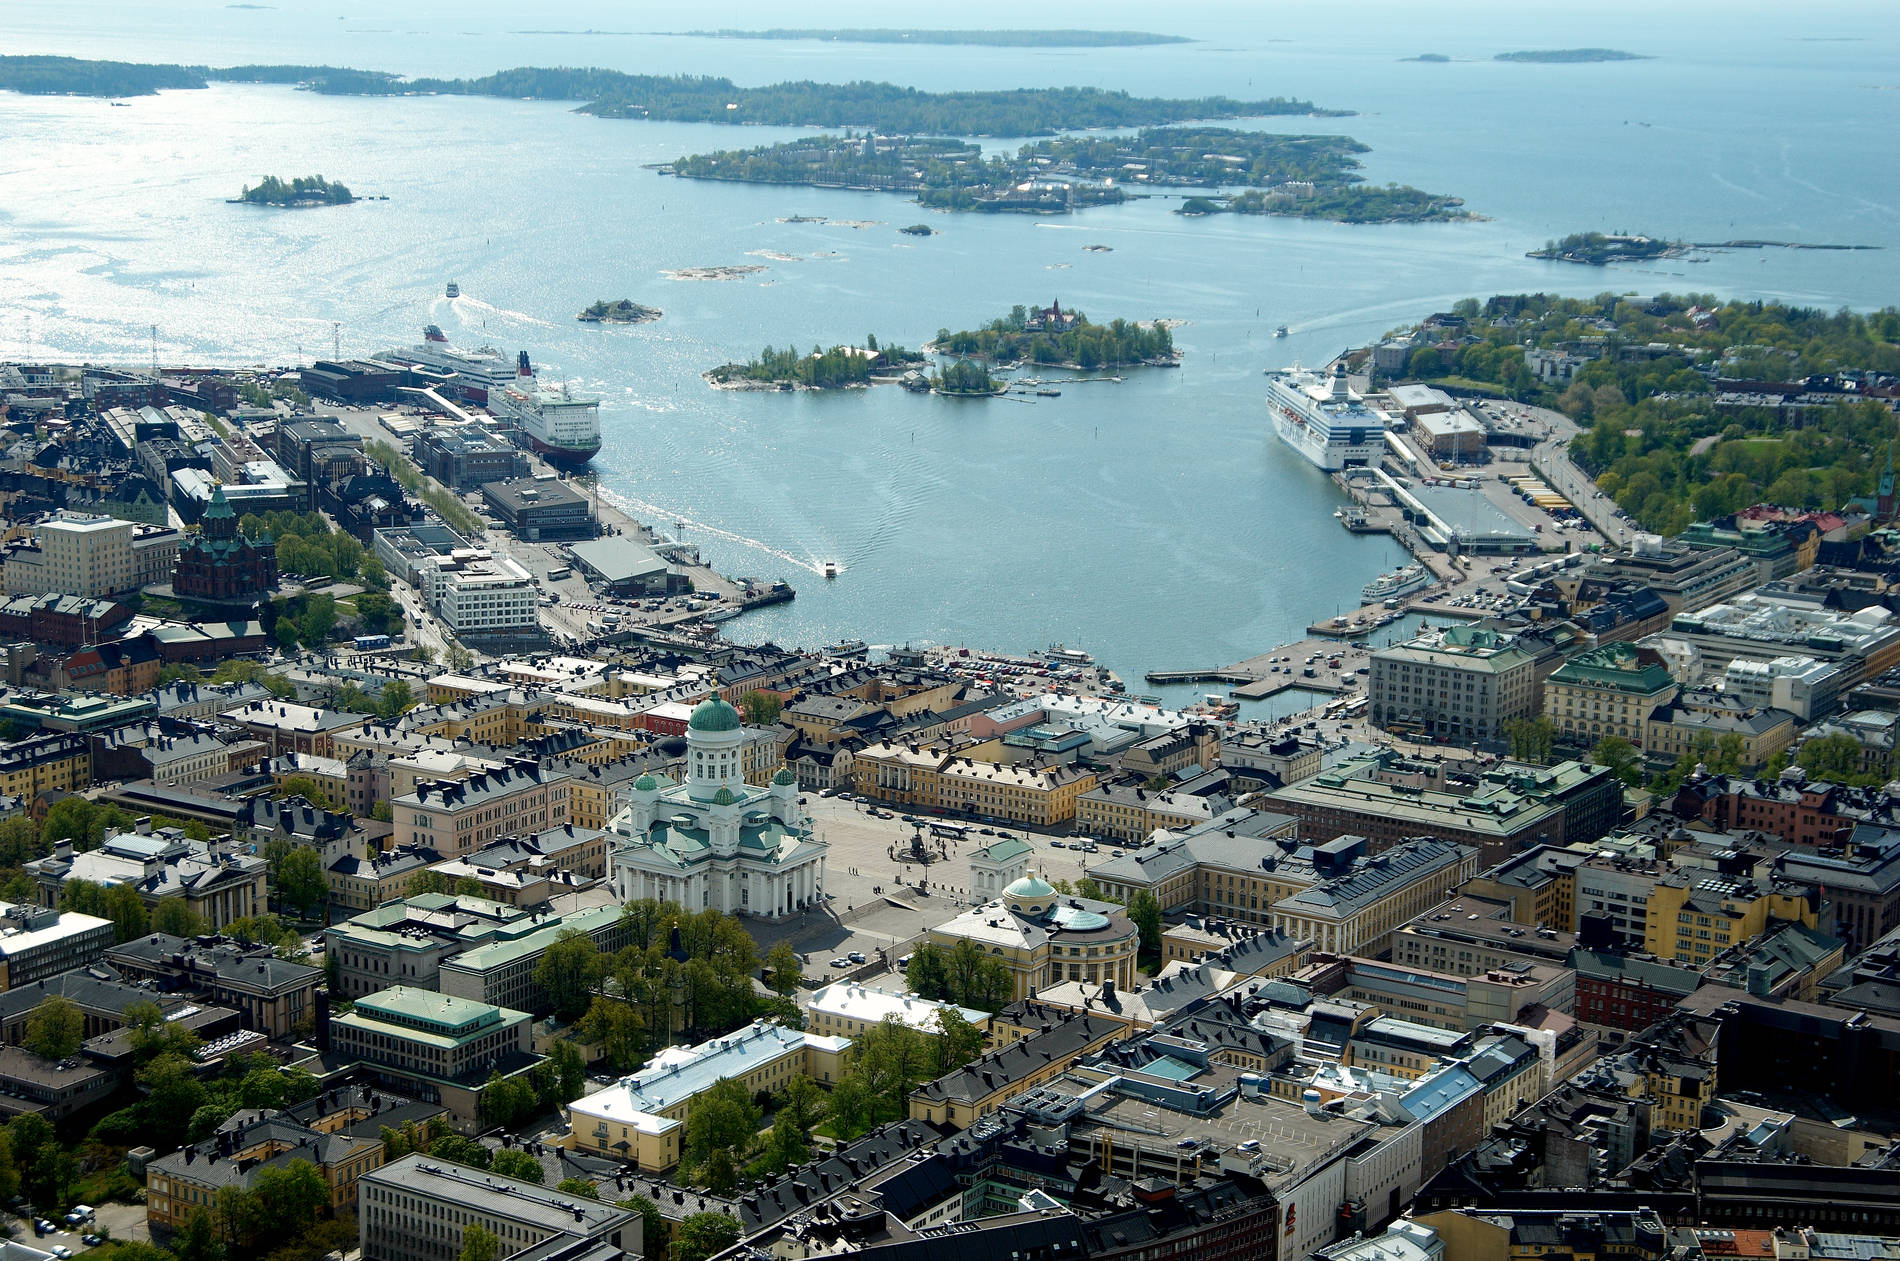 Aerial view of Helsinki, Finland